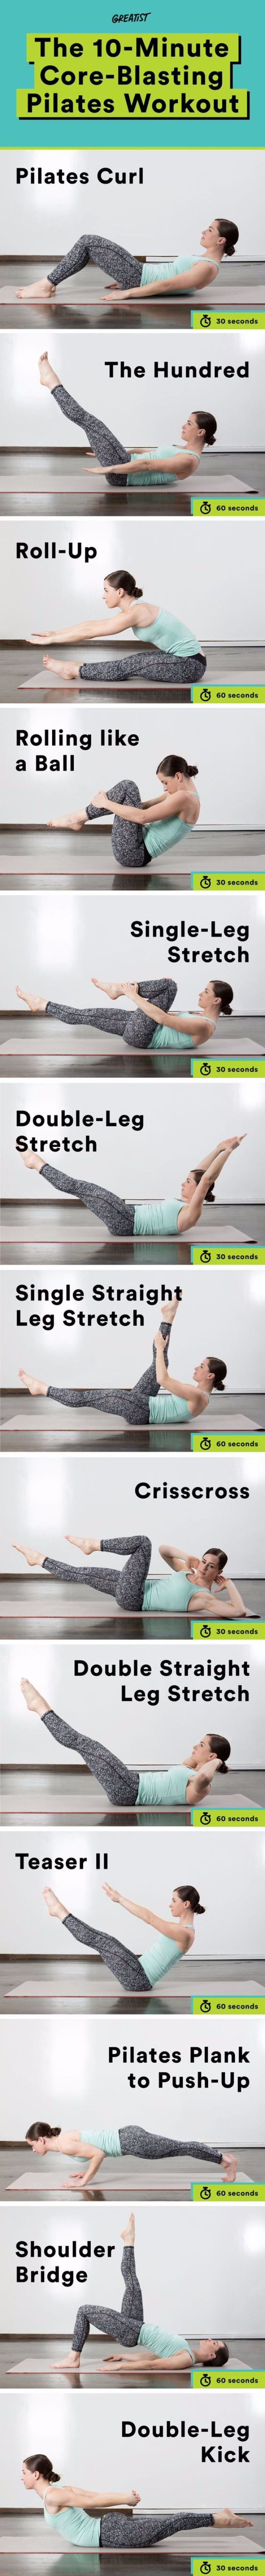 Best Quick At Home Workouts - 10-Minute Core-Blasting Pilates Workout - Easy Tutorials and Work Out Ideas for Strength Training and Exercises - Step by Step Tutorials for Butt Workouts, Abs Tummy and Stomach, Legs, Arms, Chest and Back - Fast 5 and 10 Minute Workouts You Can Do On Your Lunch Break, In Car, in Hotel #exercise #health